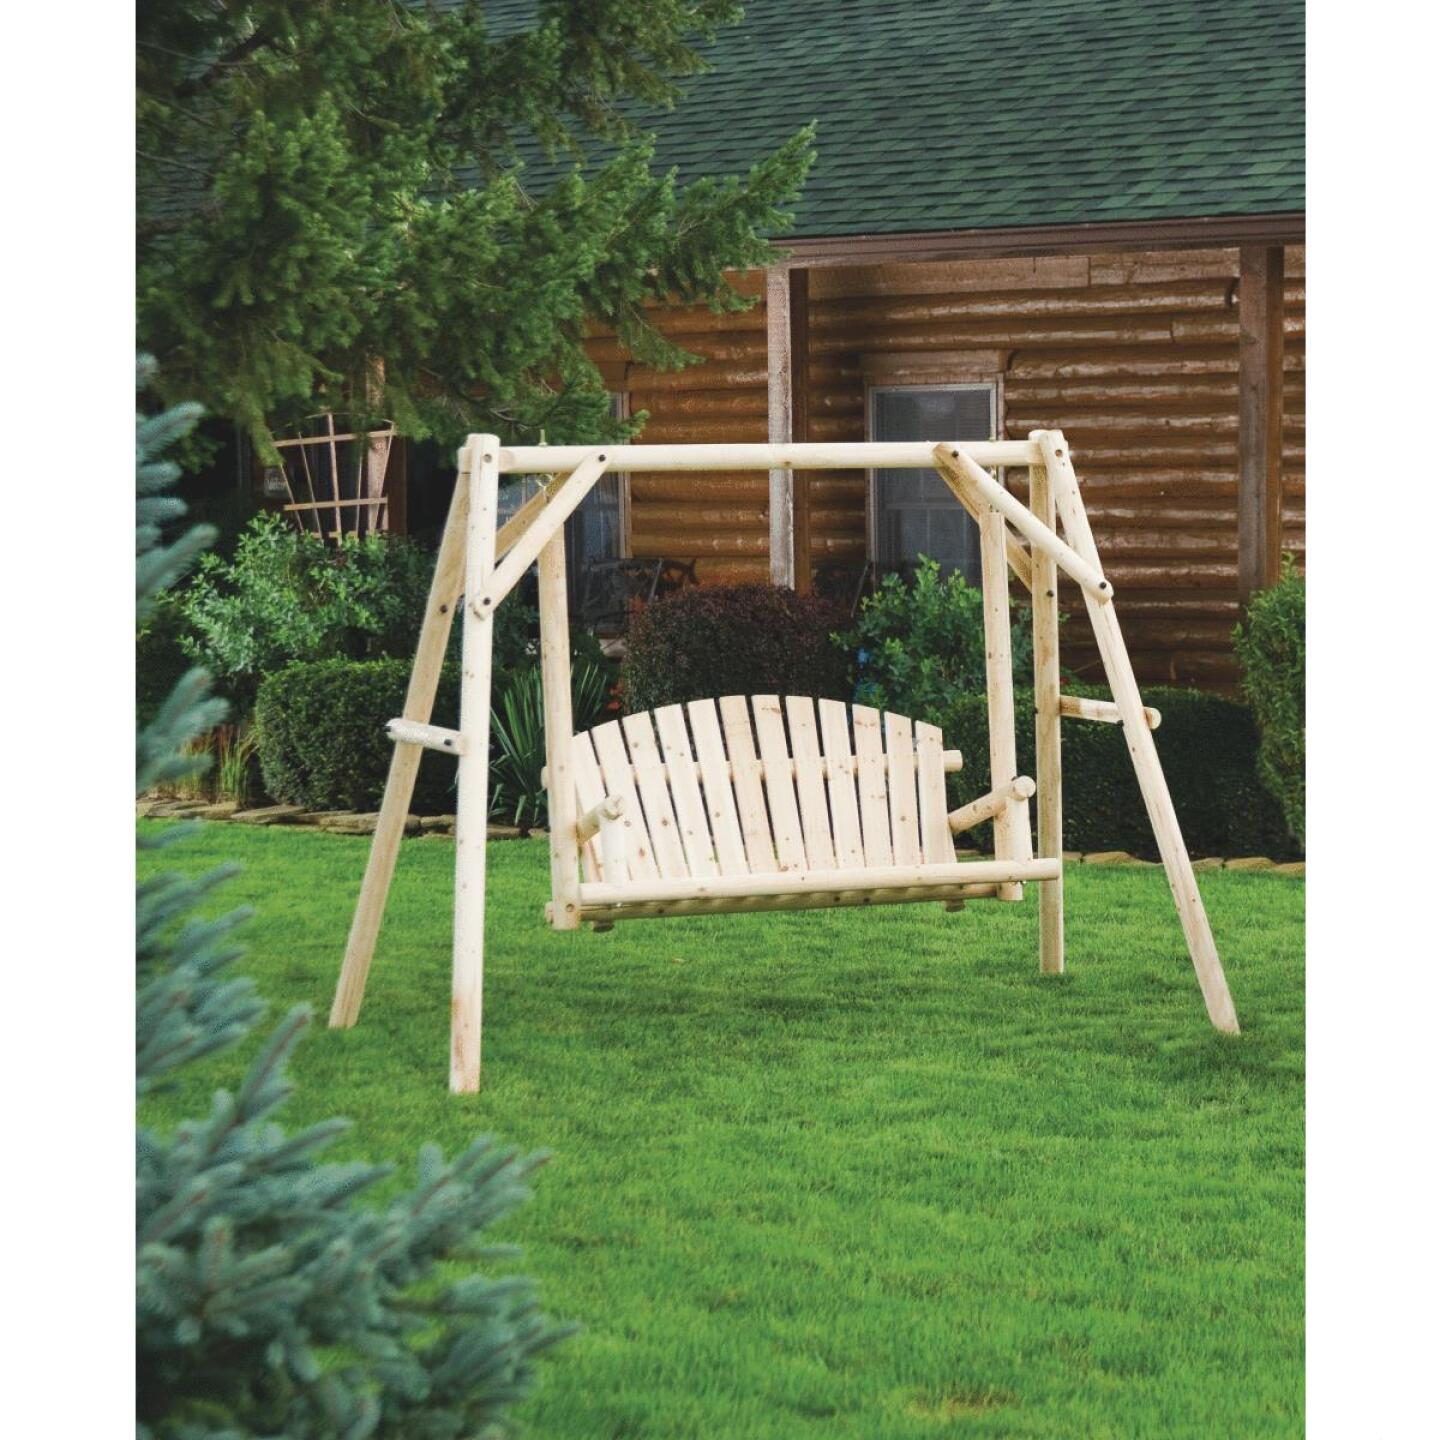 Jack Post North Woods 2-Person 71 In. W. x 67 In. H. x 55 In. D. Natural Log Patio Swing with Canopy Image 3